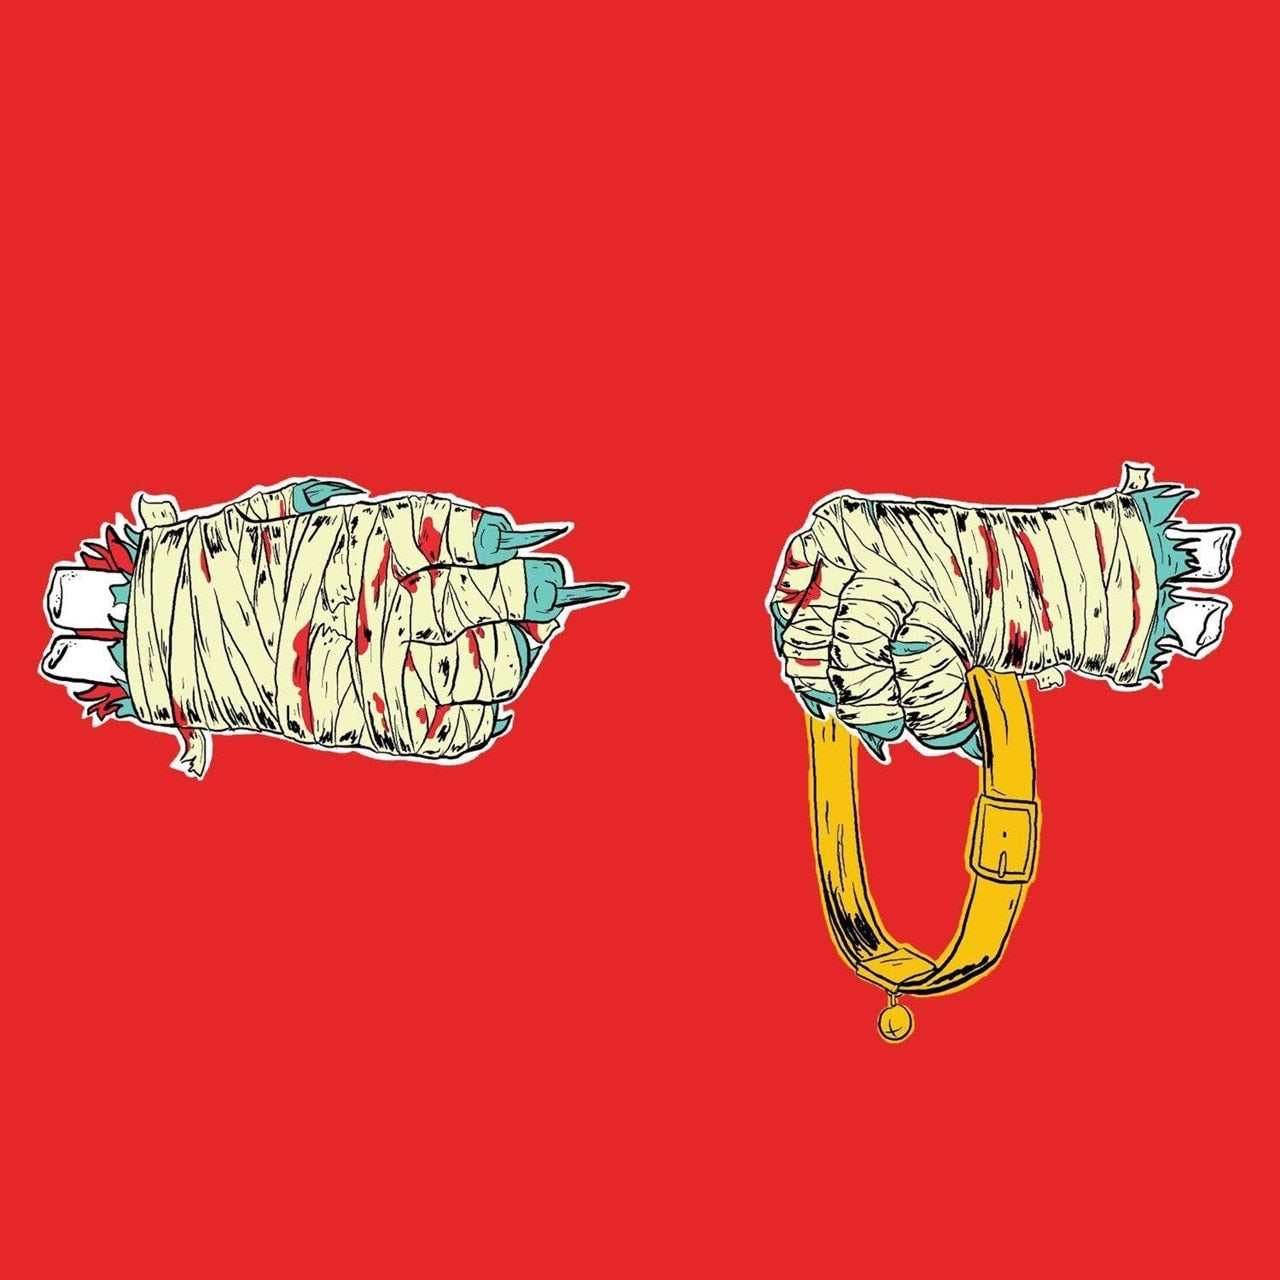 Run The Jewels - Run The Jewels 2 (Special Edition Teal Vinyl - 2LP Gatefold Sleeve)